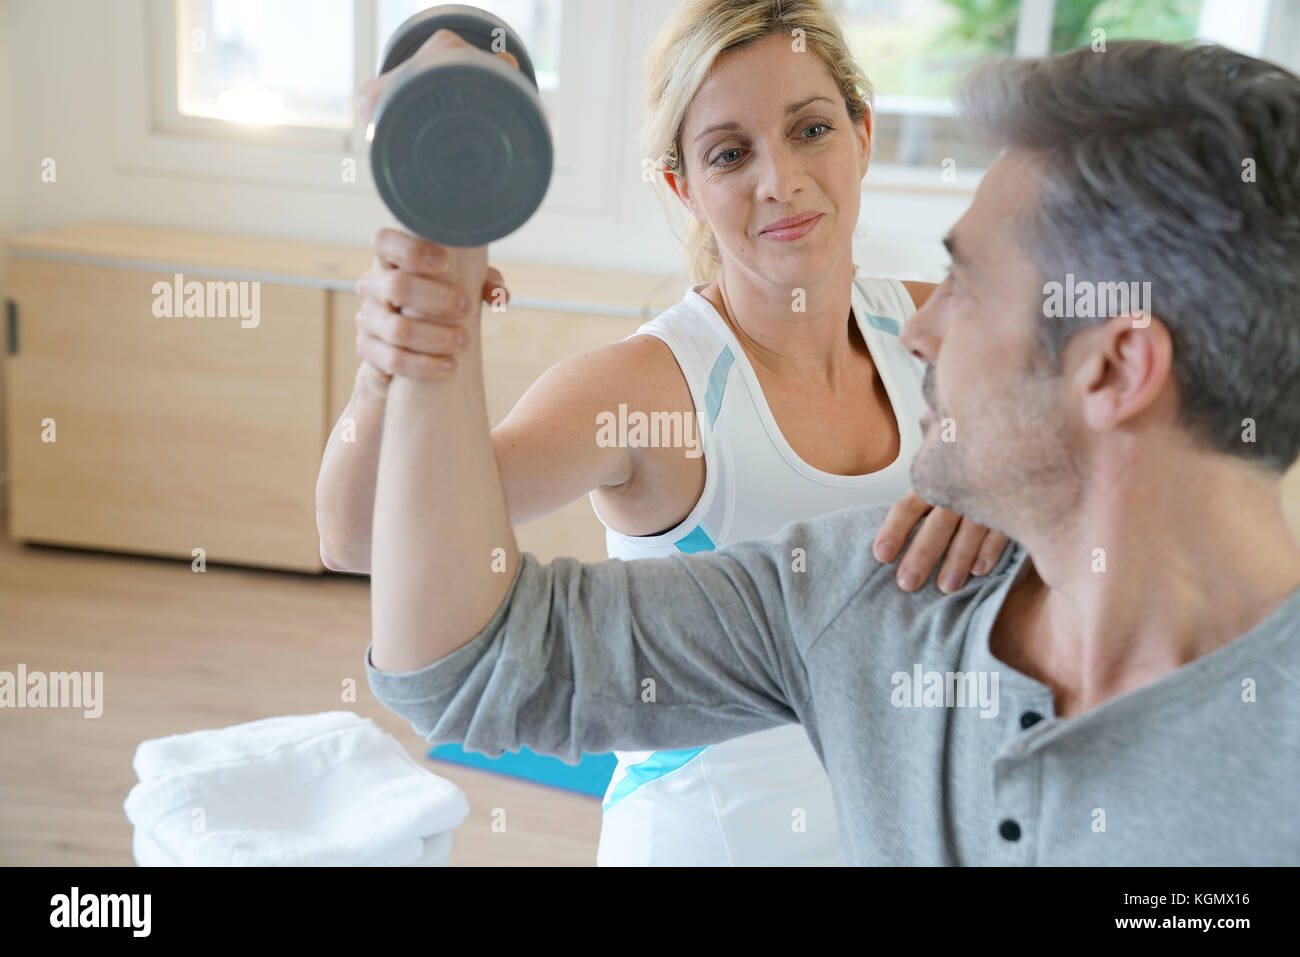 Physiotherapist strenghtening patient arms - Stock Image